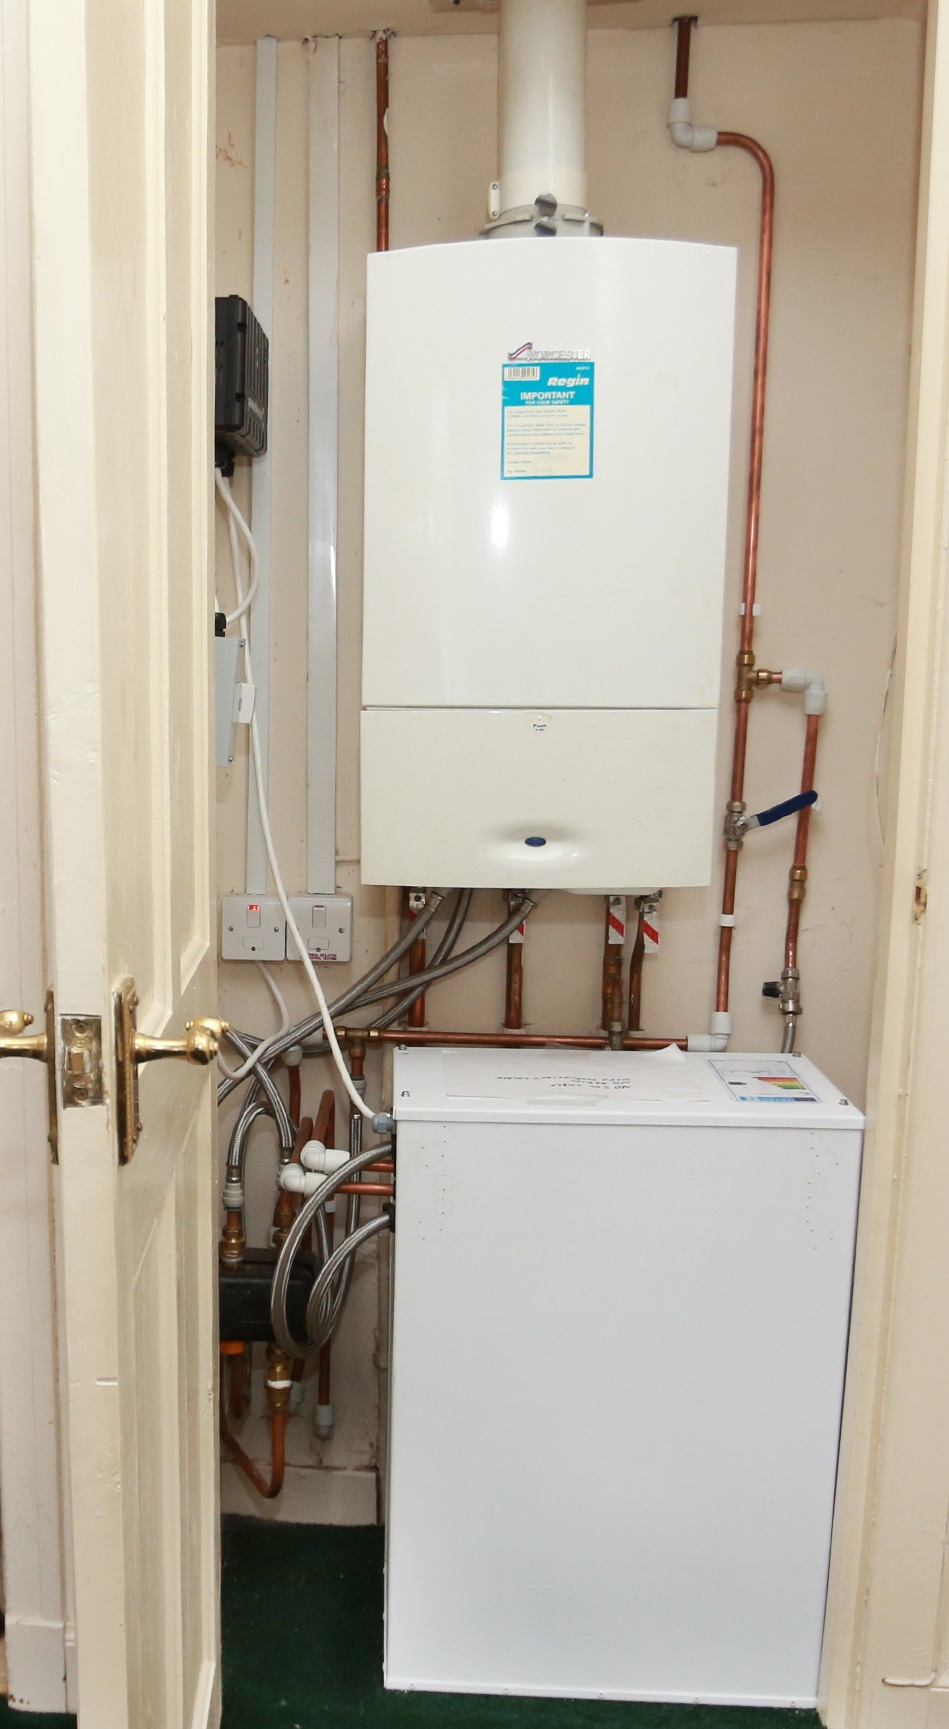 A Sunamp thermal battery inside a small cupboard below a gas boiler